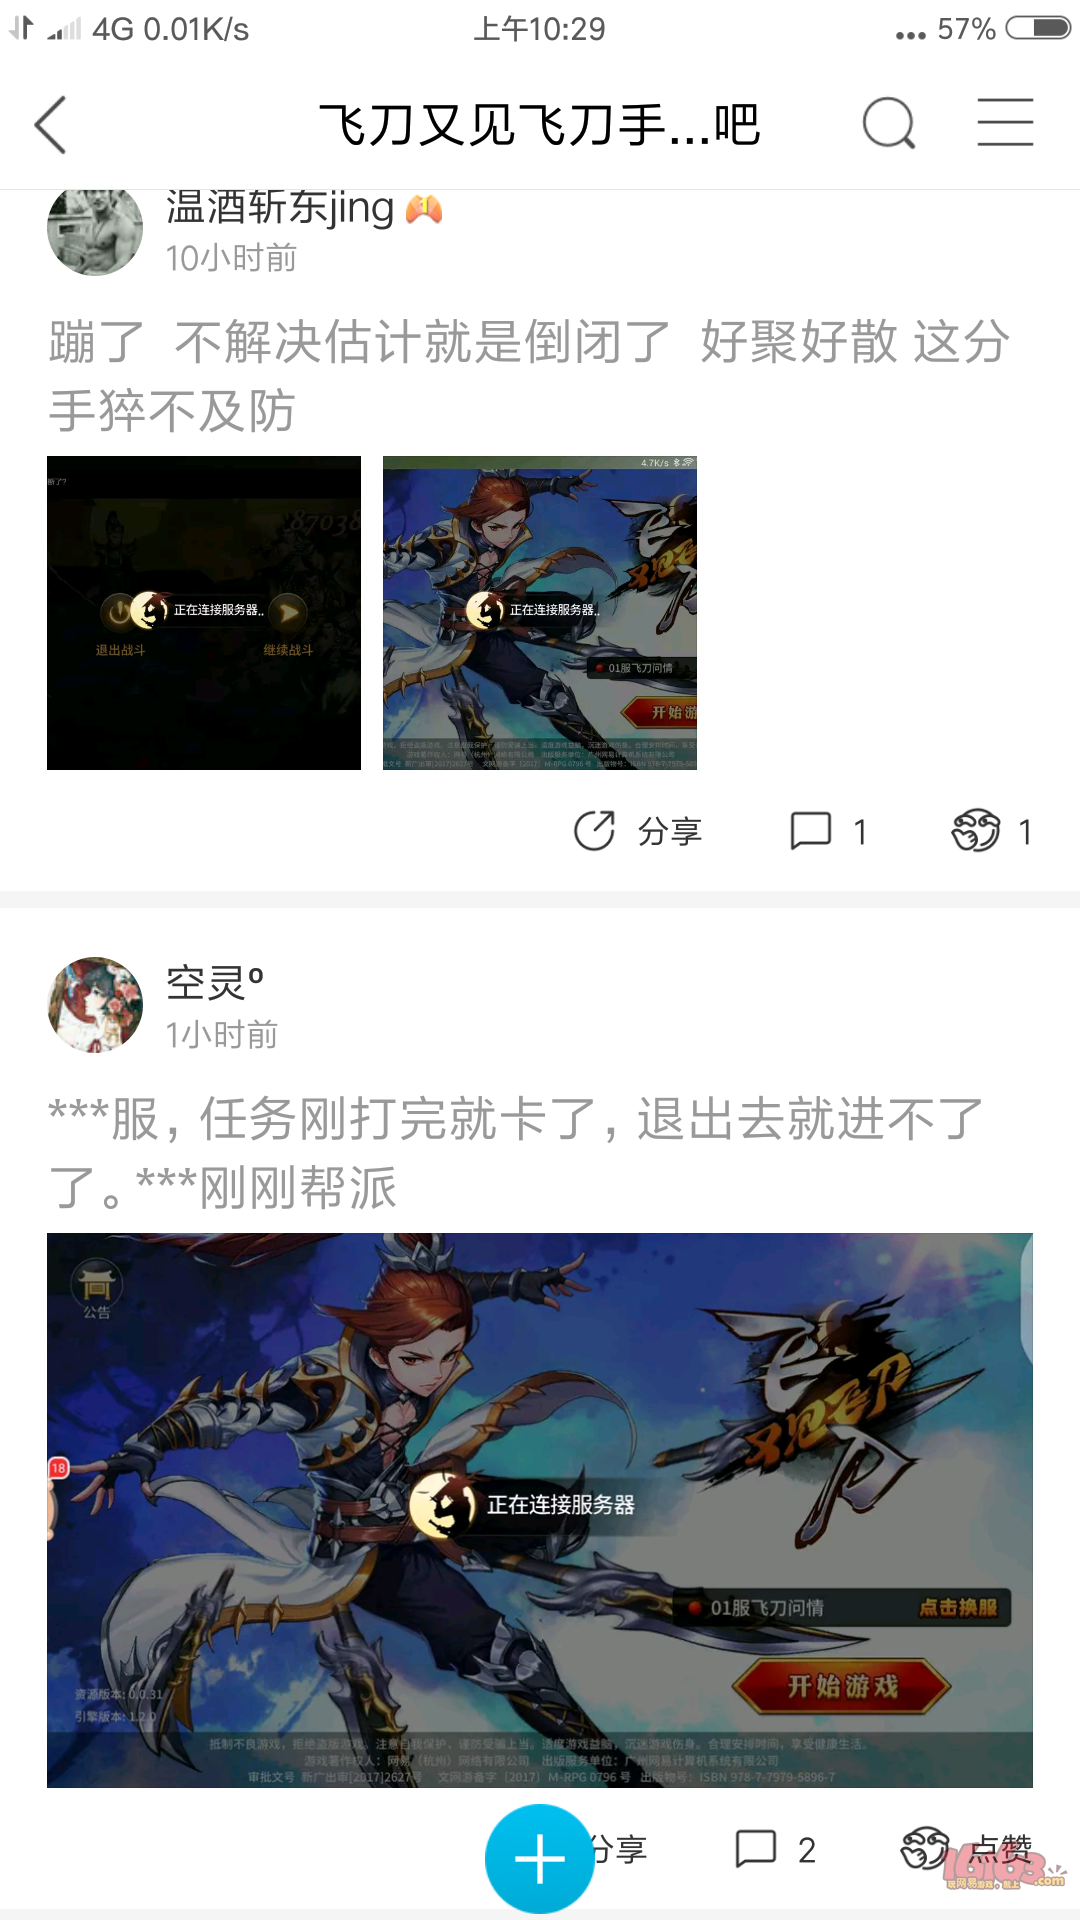 Screenshot_2017-11-06-10-29-02-982_com.baidu.tieba.png